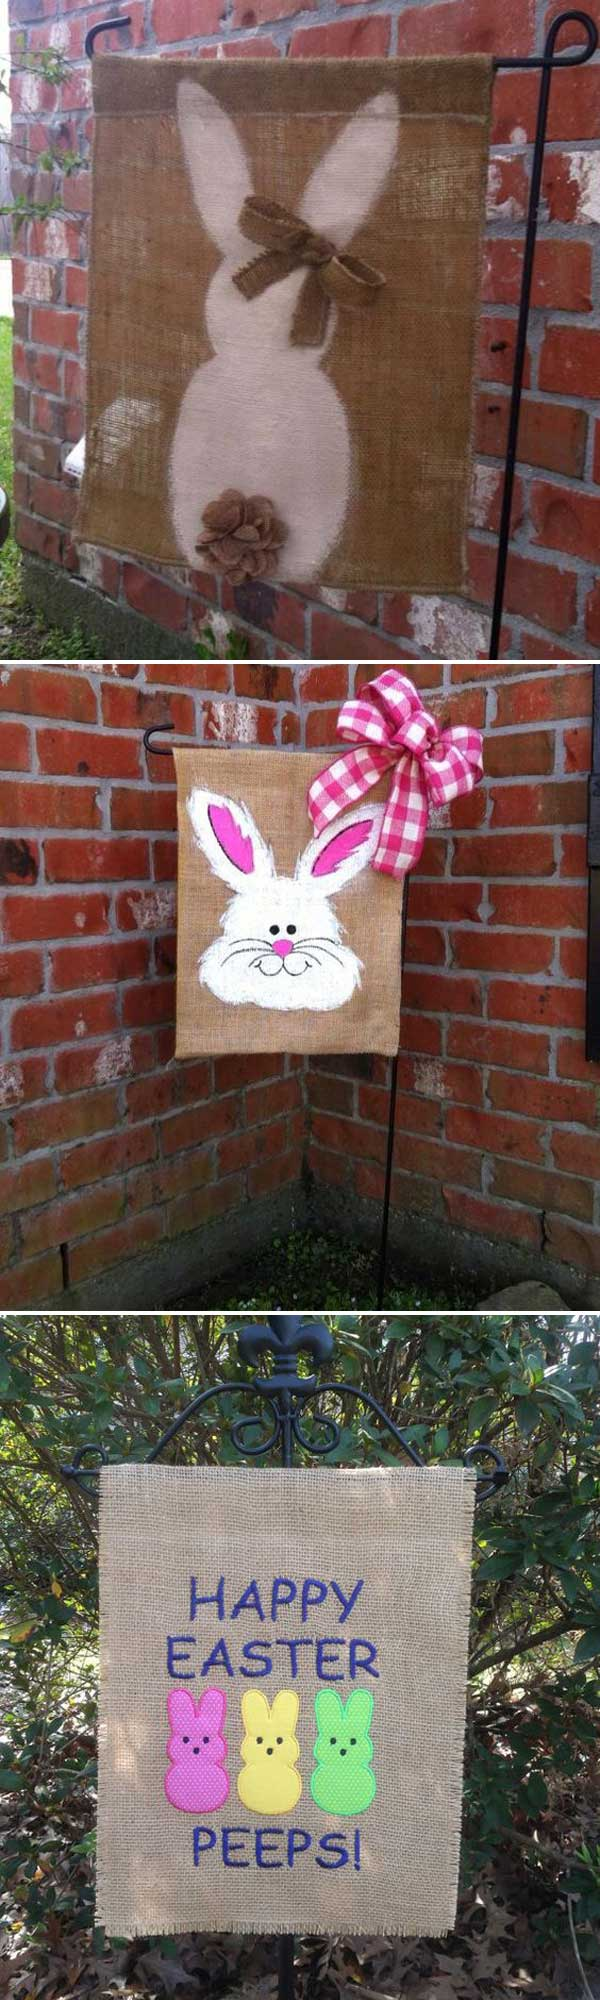 Top 22 Cutest Diy Easter Decorating Ideas For Front Yard